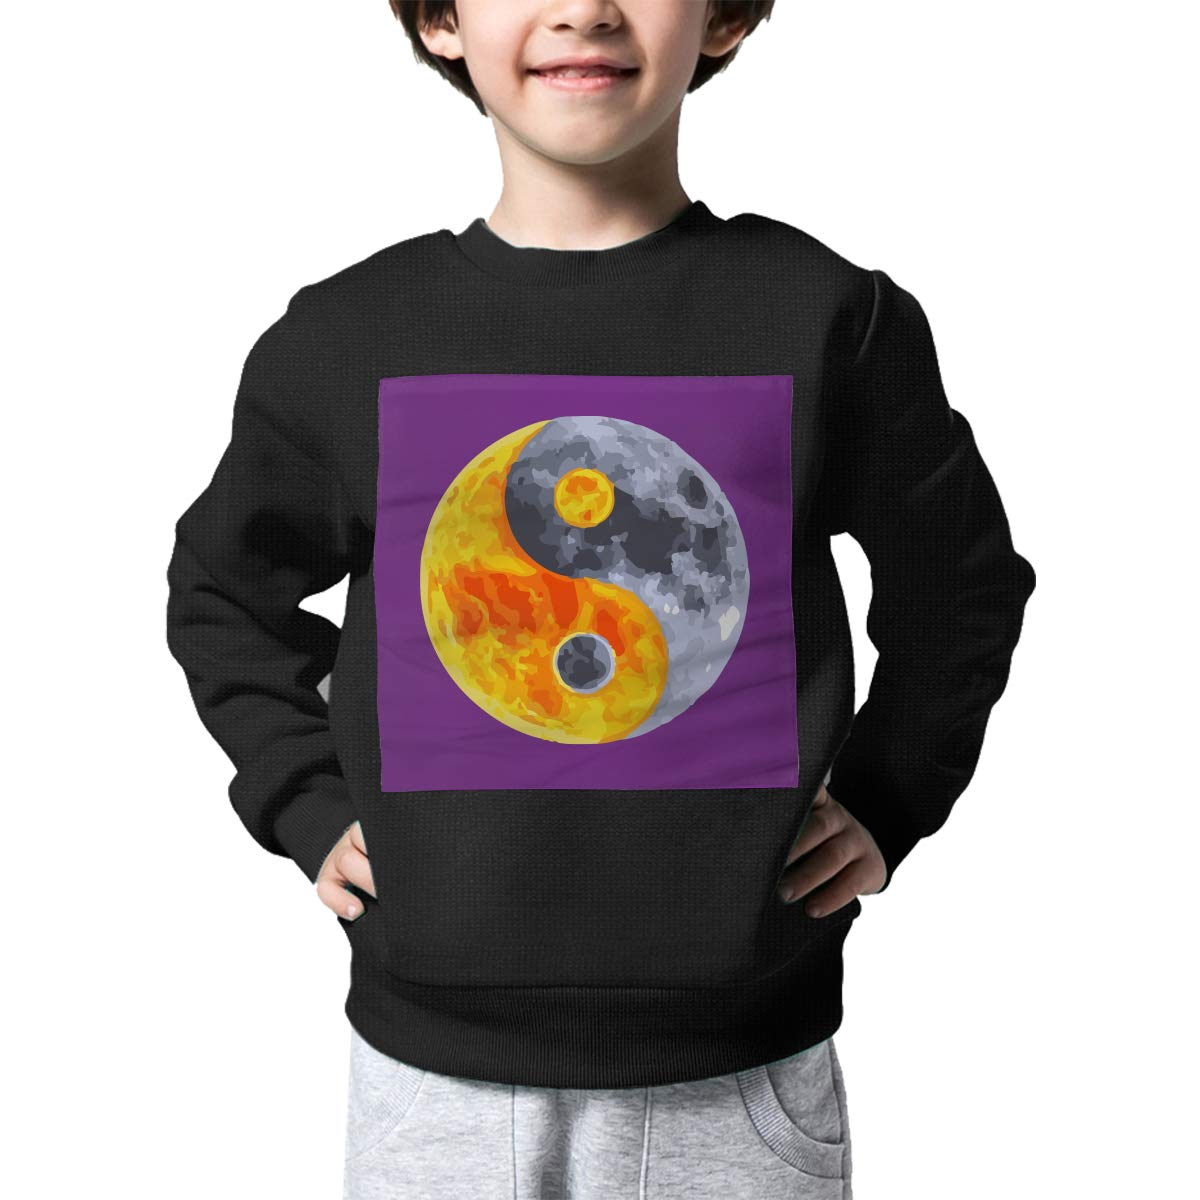 Childrens Yin and Yang Fish Planet Sweater Boys Girls Printed Sweater